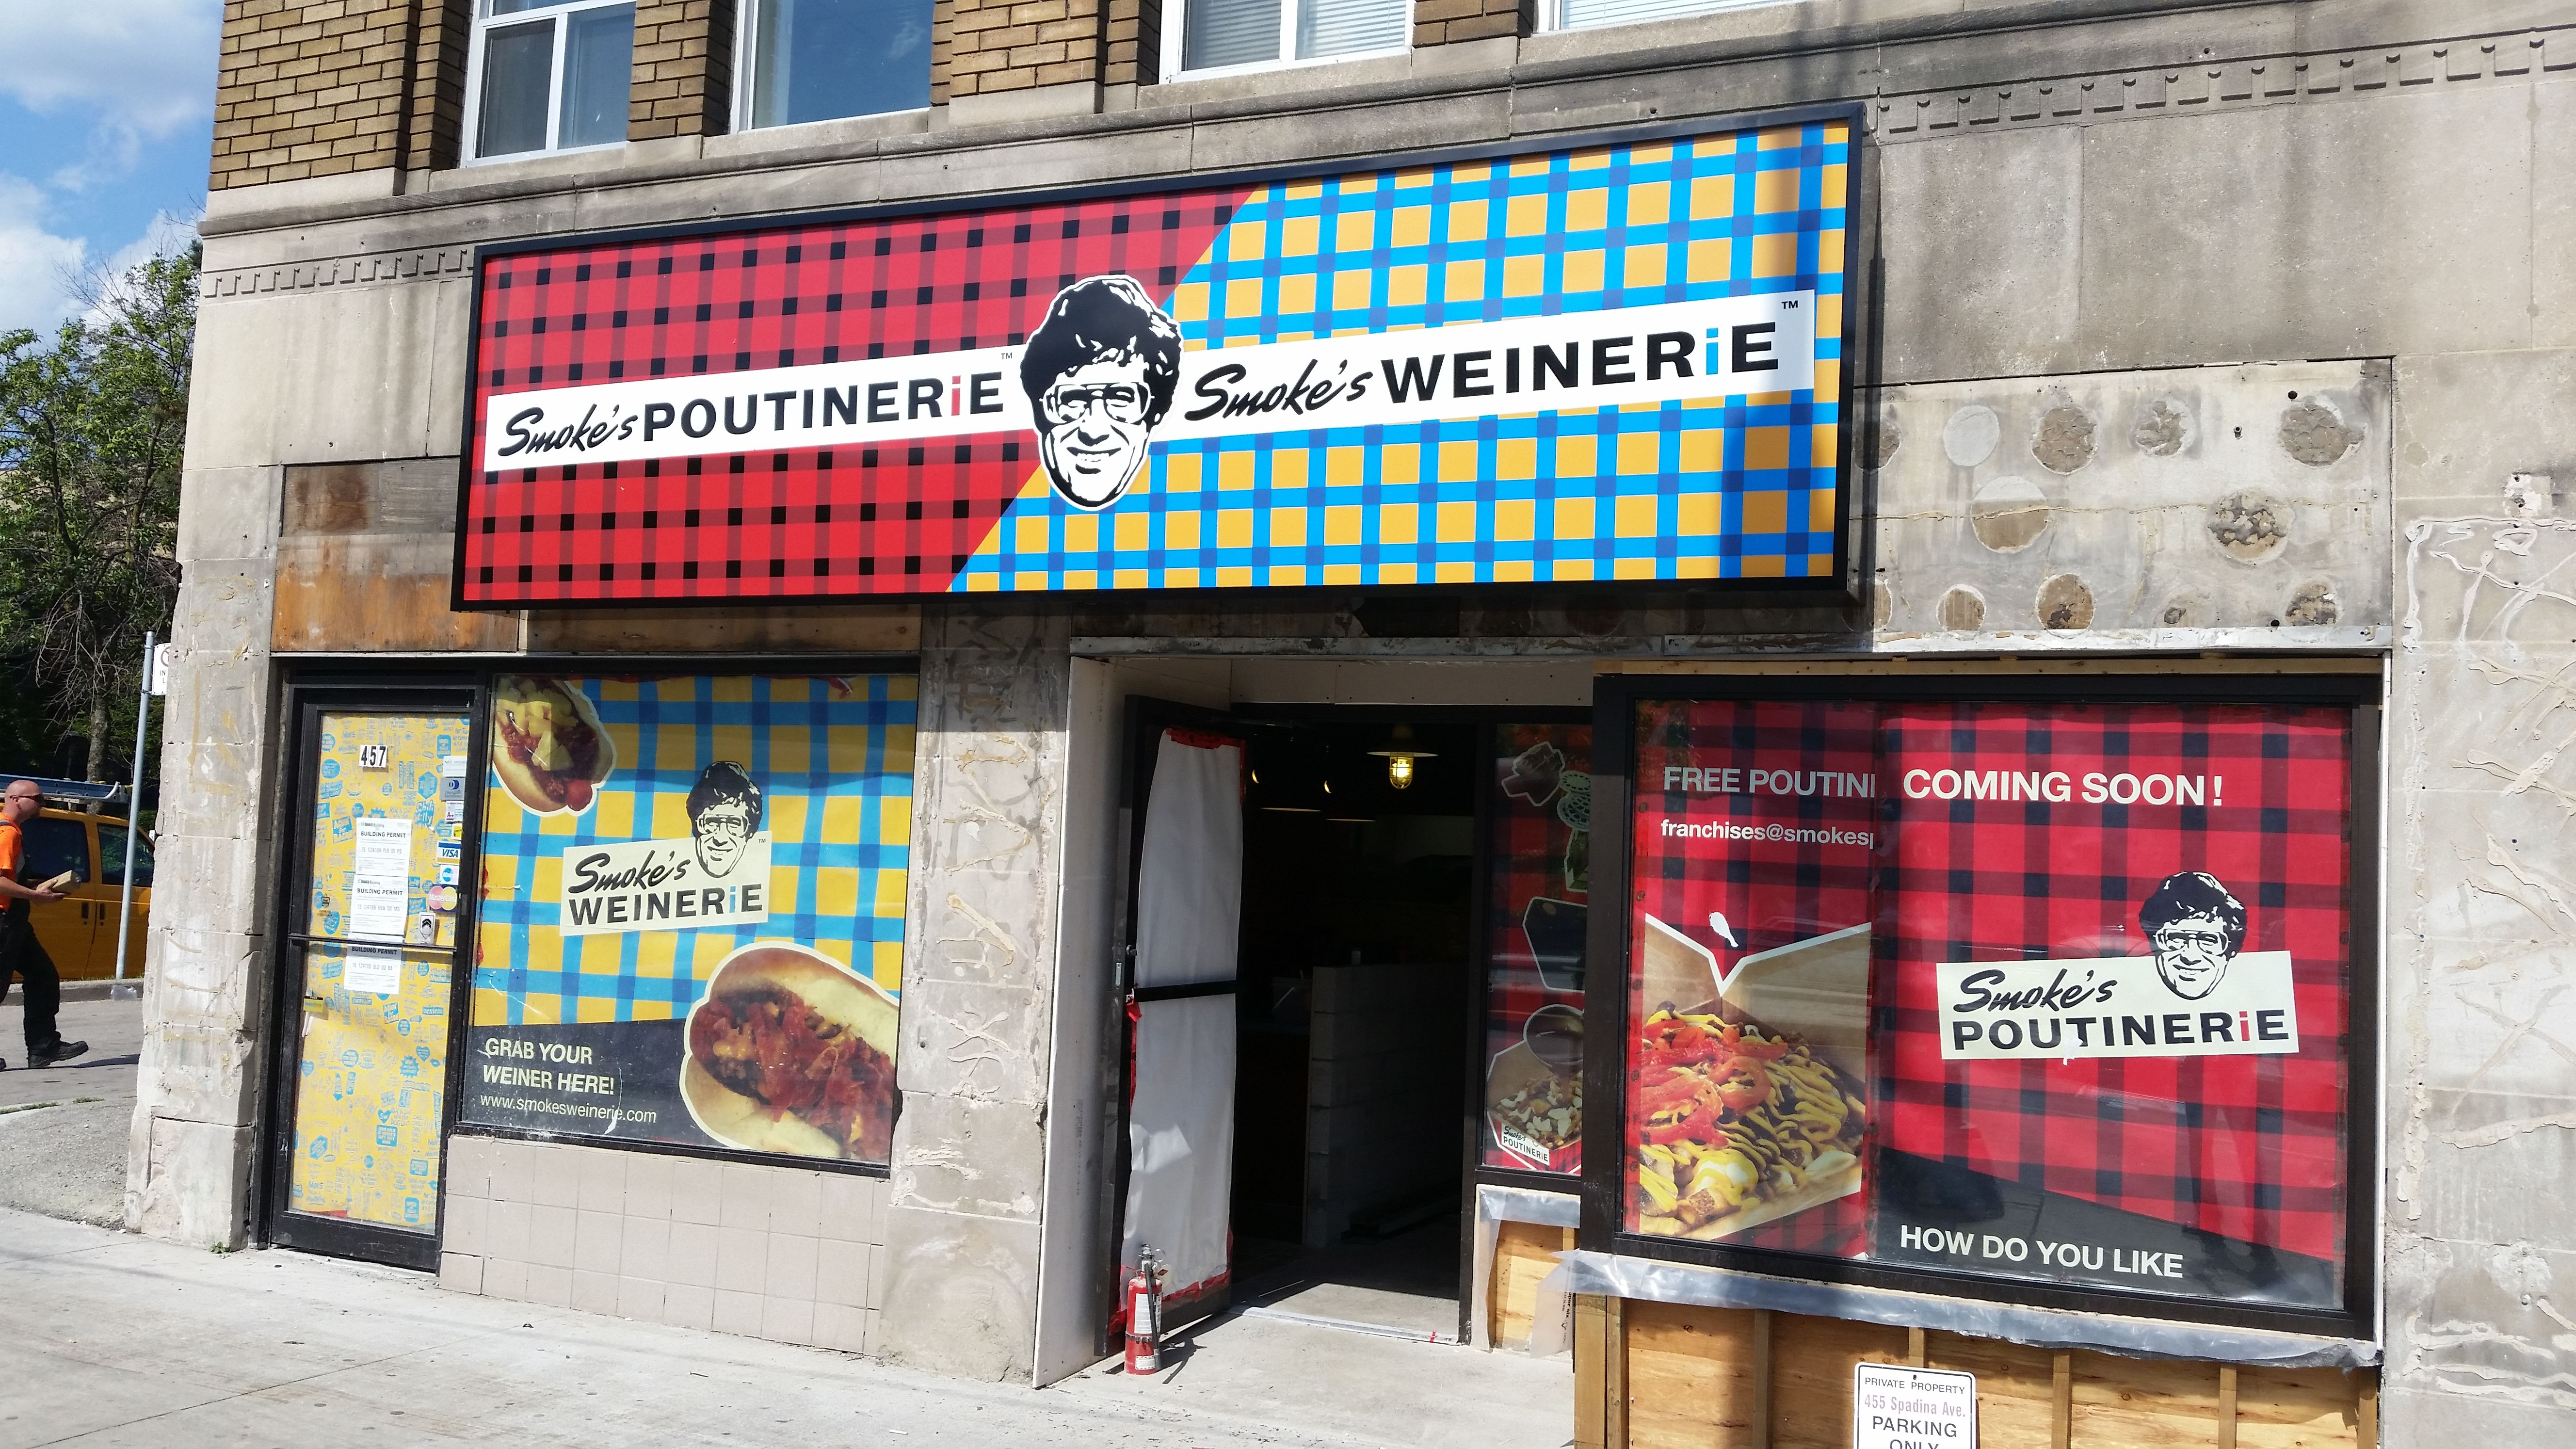 Another Smoke's Poutinerie location almost all set to open up.  Check out the storefront graphics at Smoke's Spadina in Toronto! #signsandsignage #wewantpoutine www.SpeedproDurham.ca